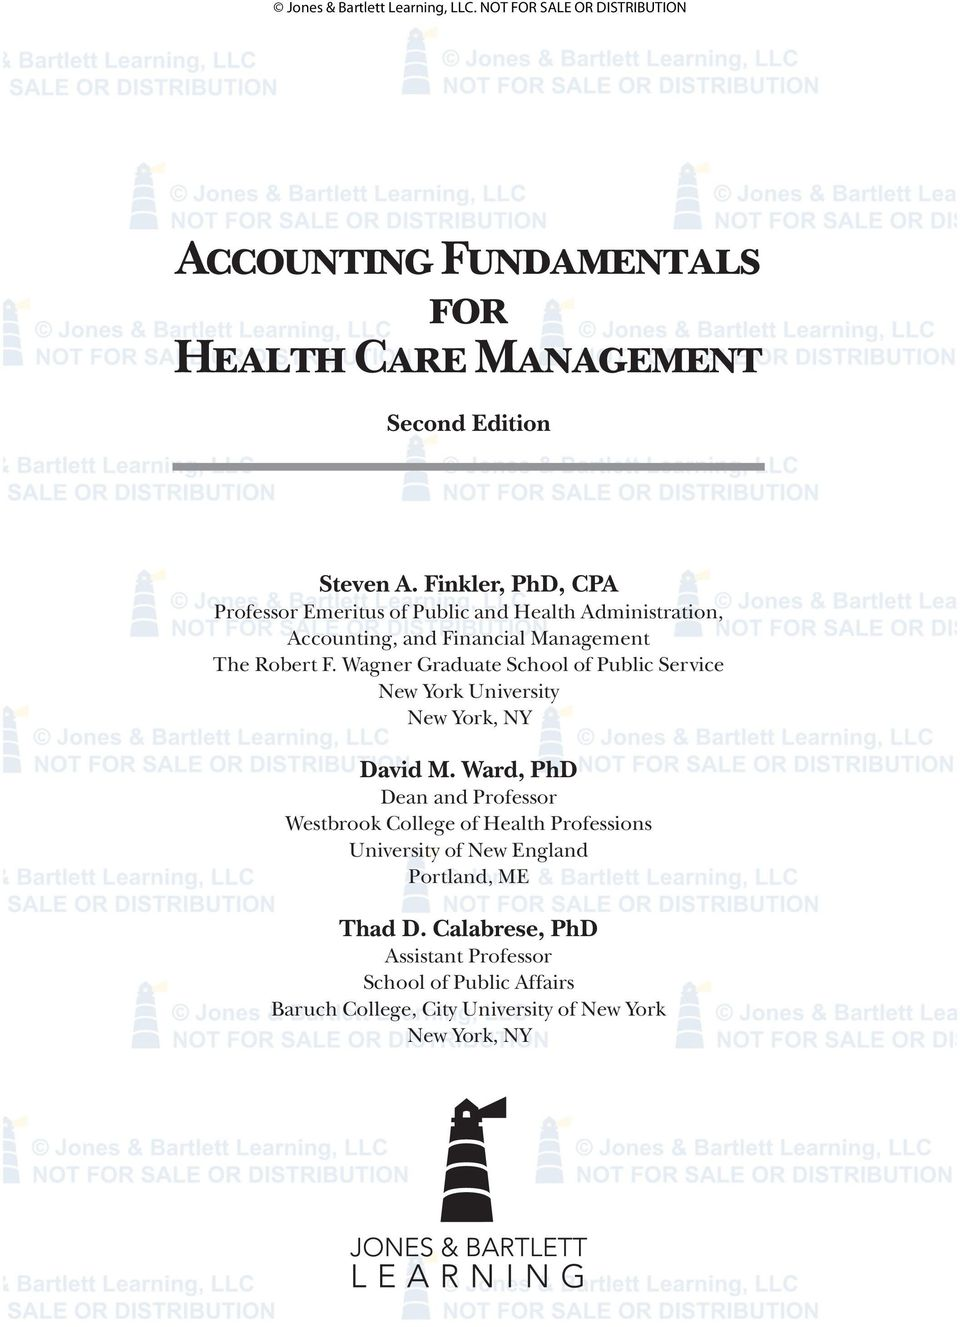 Accounting fundamentals for health care management pdf wagner graduate school of public service new york university new york ny david m fandeluxe Choice Image